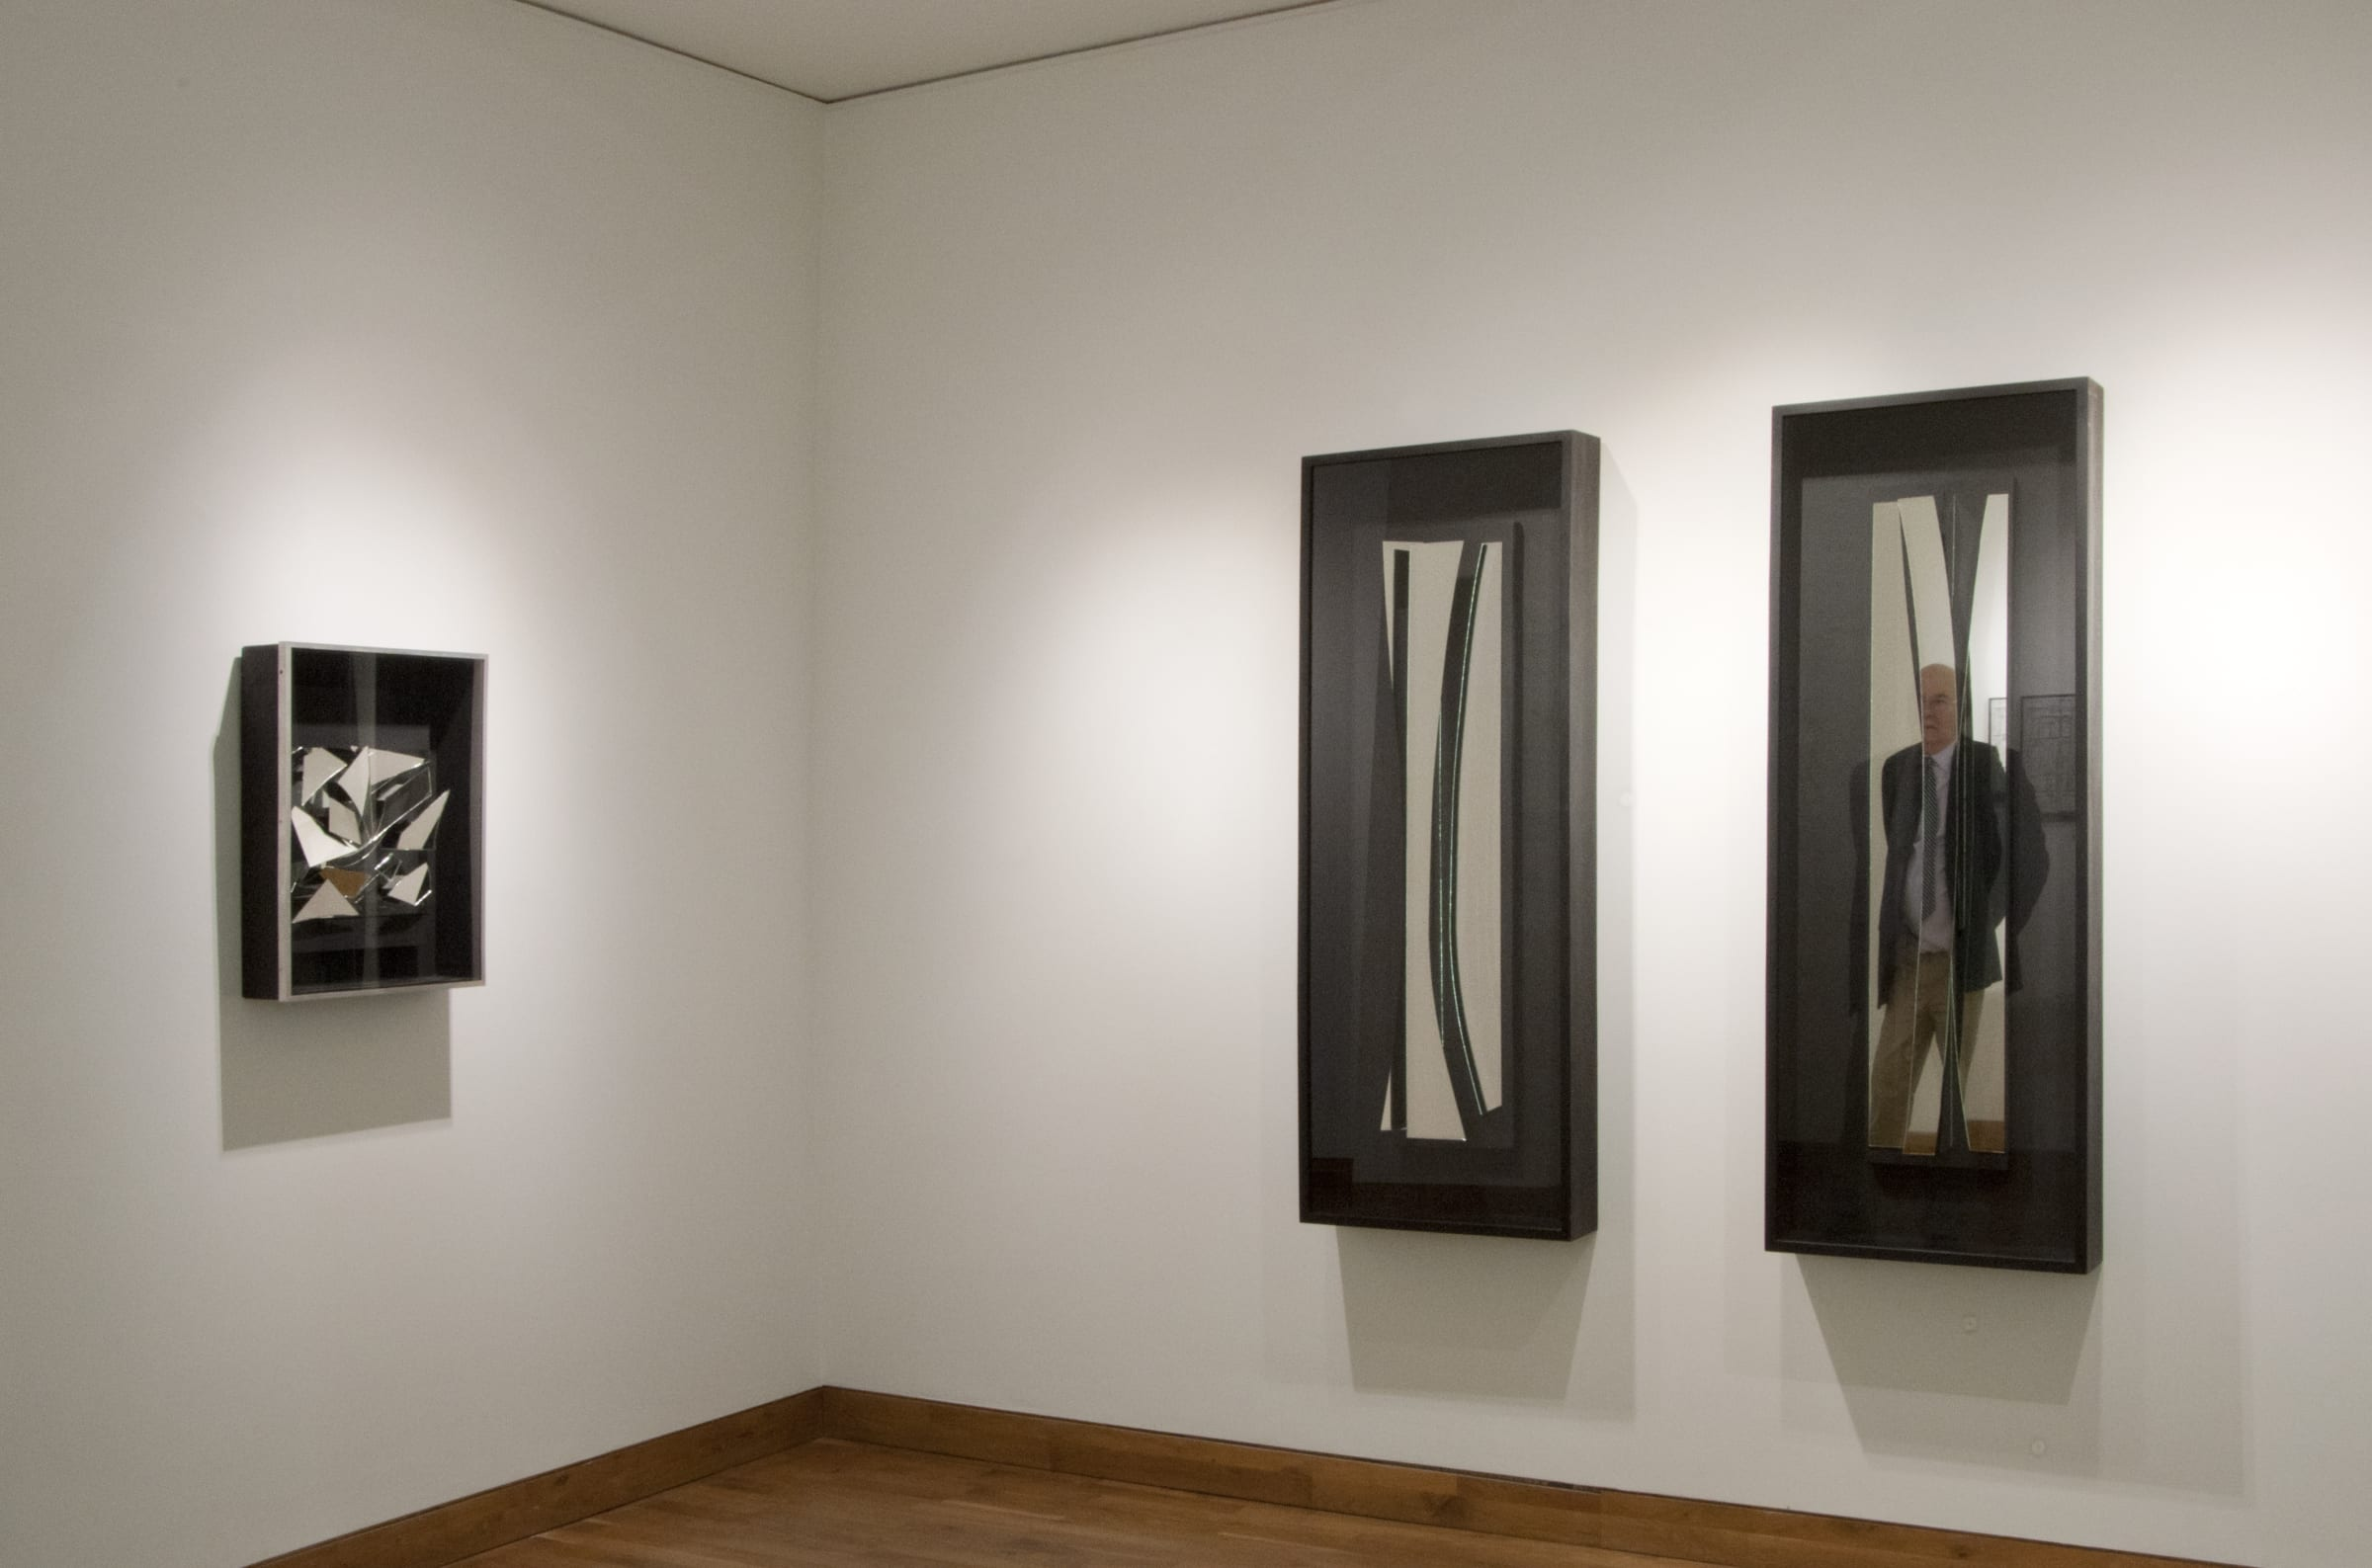 """<span class=""""link fancybox-details-link""""><a href=""""/exhibitions/75/works/image_standalone227/"""">View Detail Page</a></span><p>CHRISTIAN MEGERT   A NEW SPACE   11 JAN - 24 FEB 2012  Installation View</p>"""